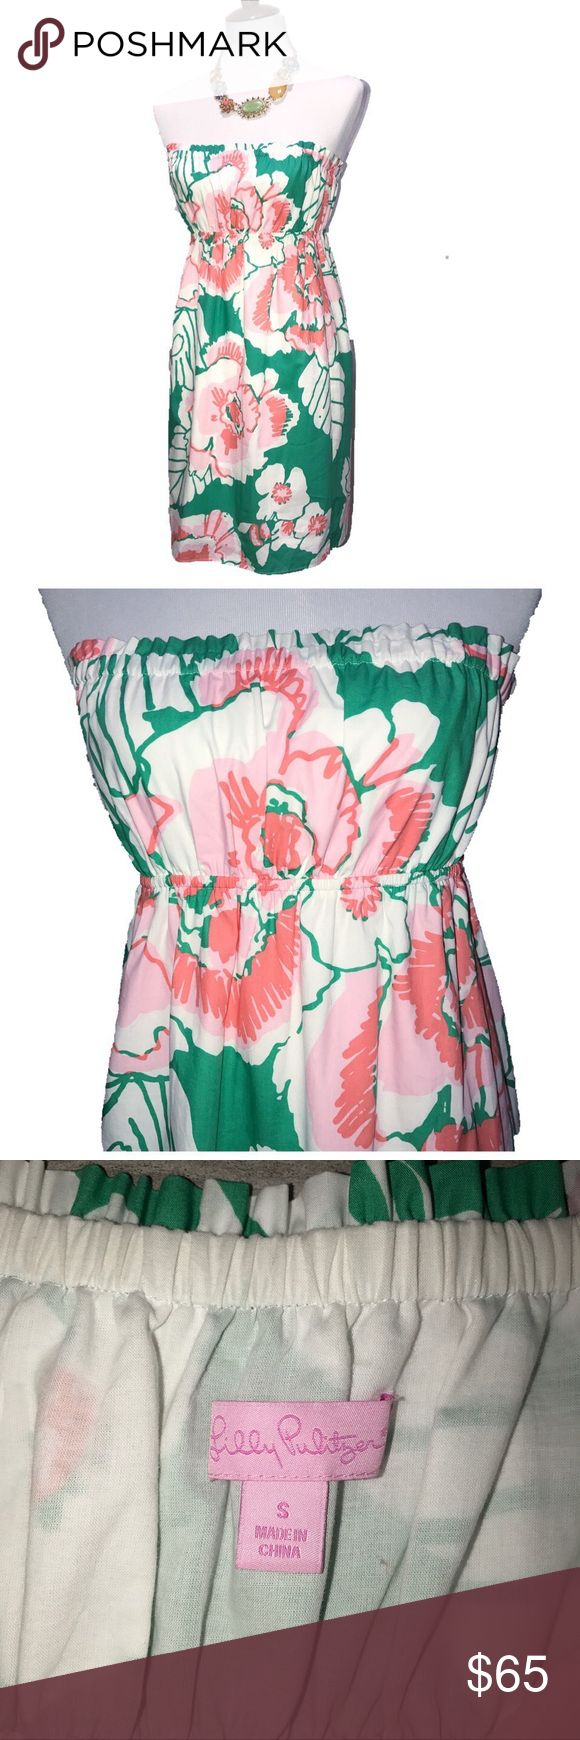 Lilly Pulitzer Hawaiian Floral Strapless Sundress Lilly Pulitzer strapless sundress. Large Hawaiian pink and light green floral print. Slip on dress, no zipper. Elastic empire waistband. Fully lined. Great condition. Lilly Pulitzer Dresses Midi